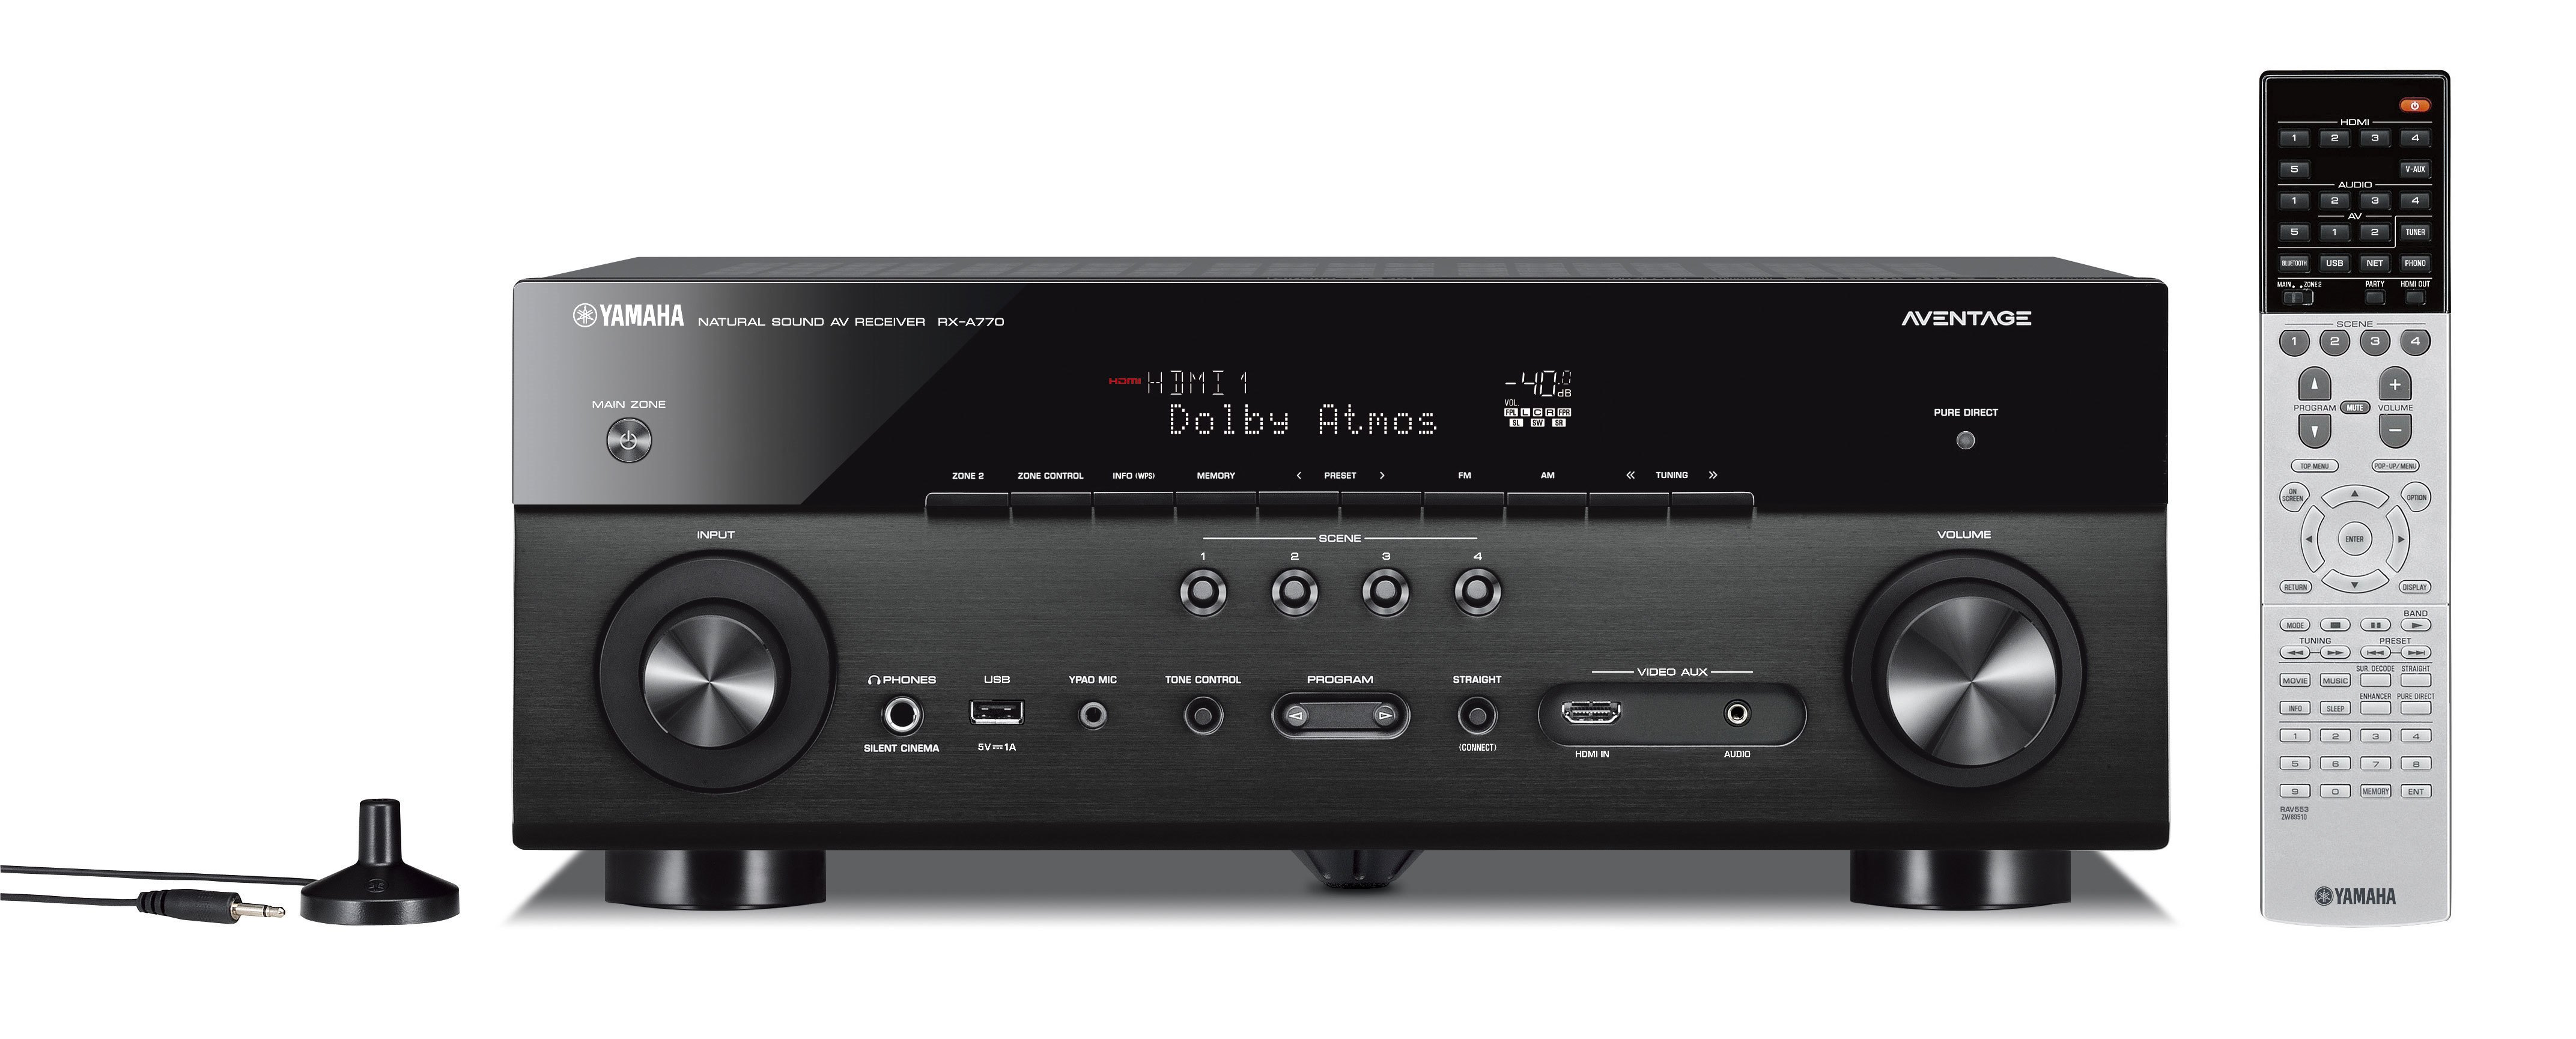 Rx A770 Overview Av Receivers Audio Visual Products Power Amplifier Compatible With Tv Discontinued